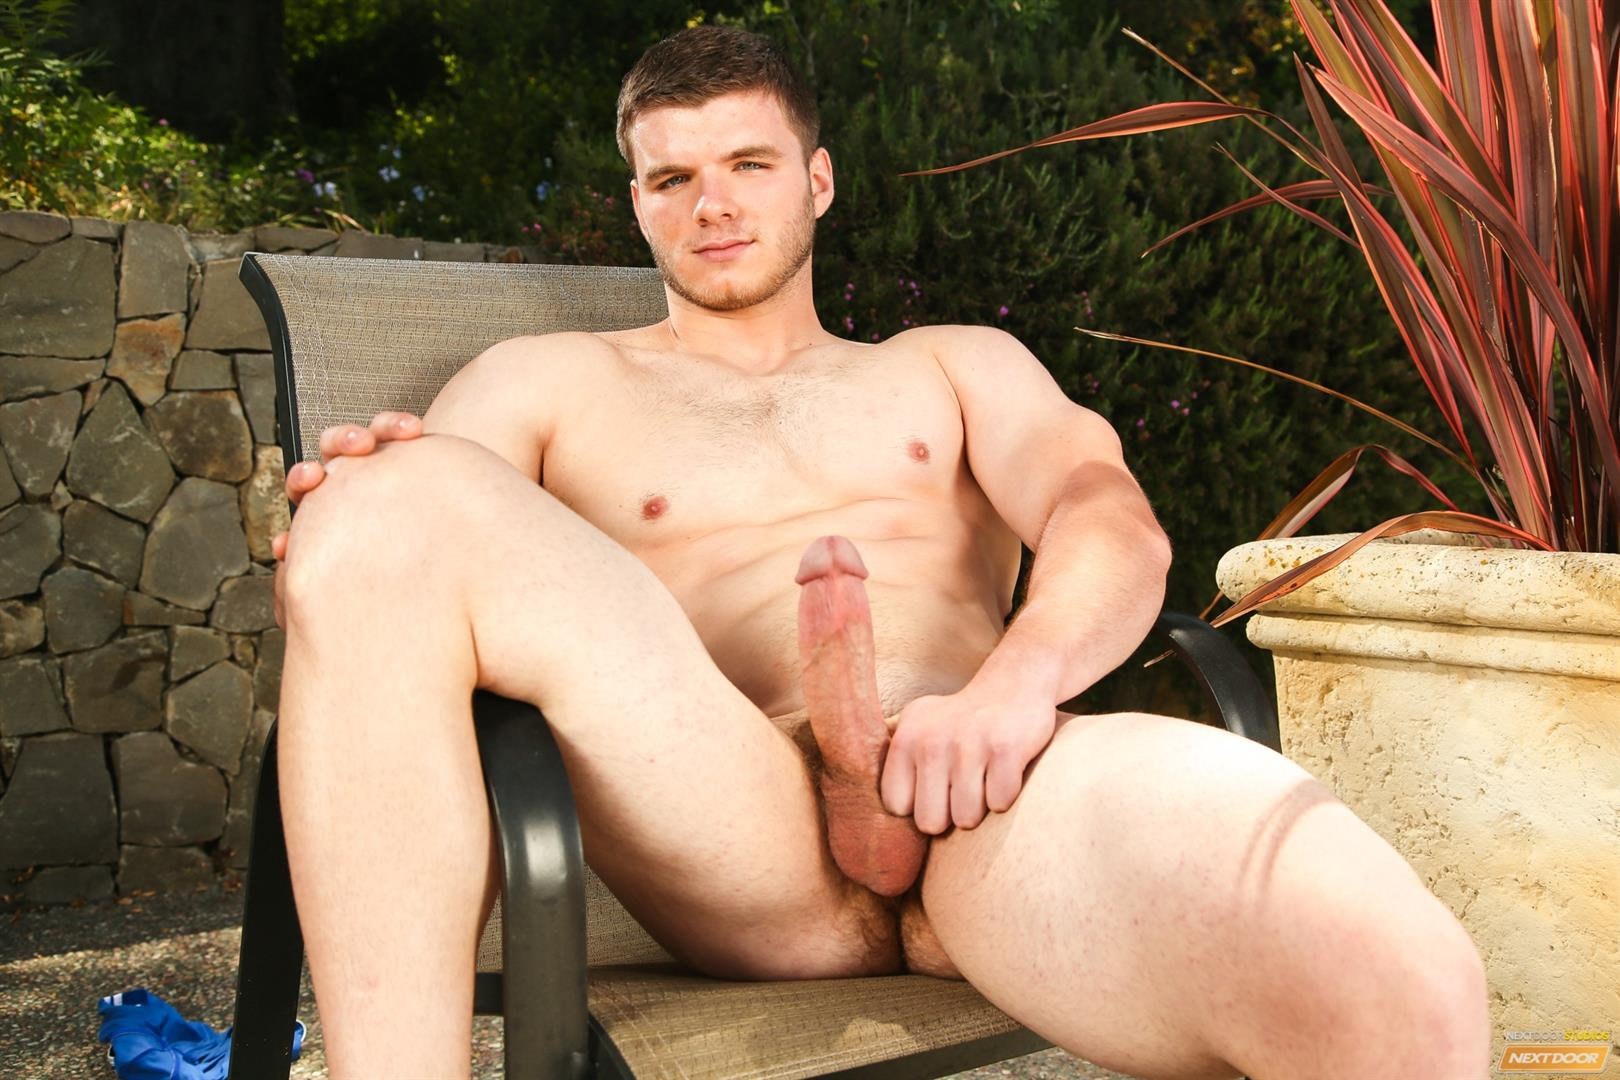 Next Door Male Ivan James Muscular Twink Masturbation Thick Cock Amateur Gay Porn 12 West Virginia Country Boy Strokes His Big Thick Cock